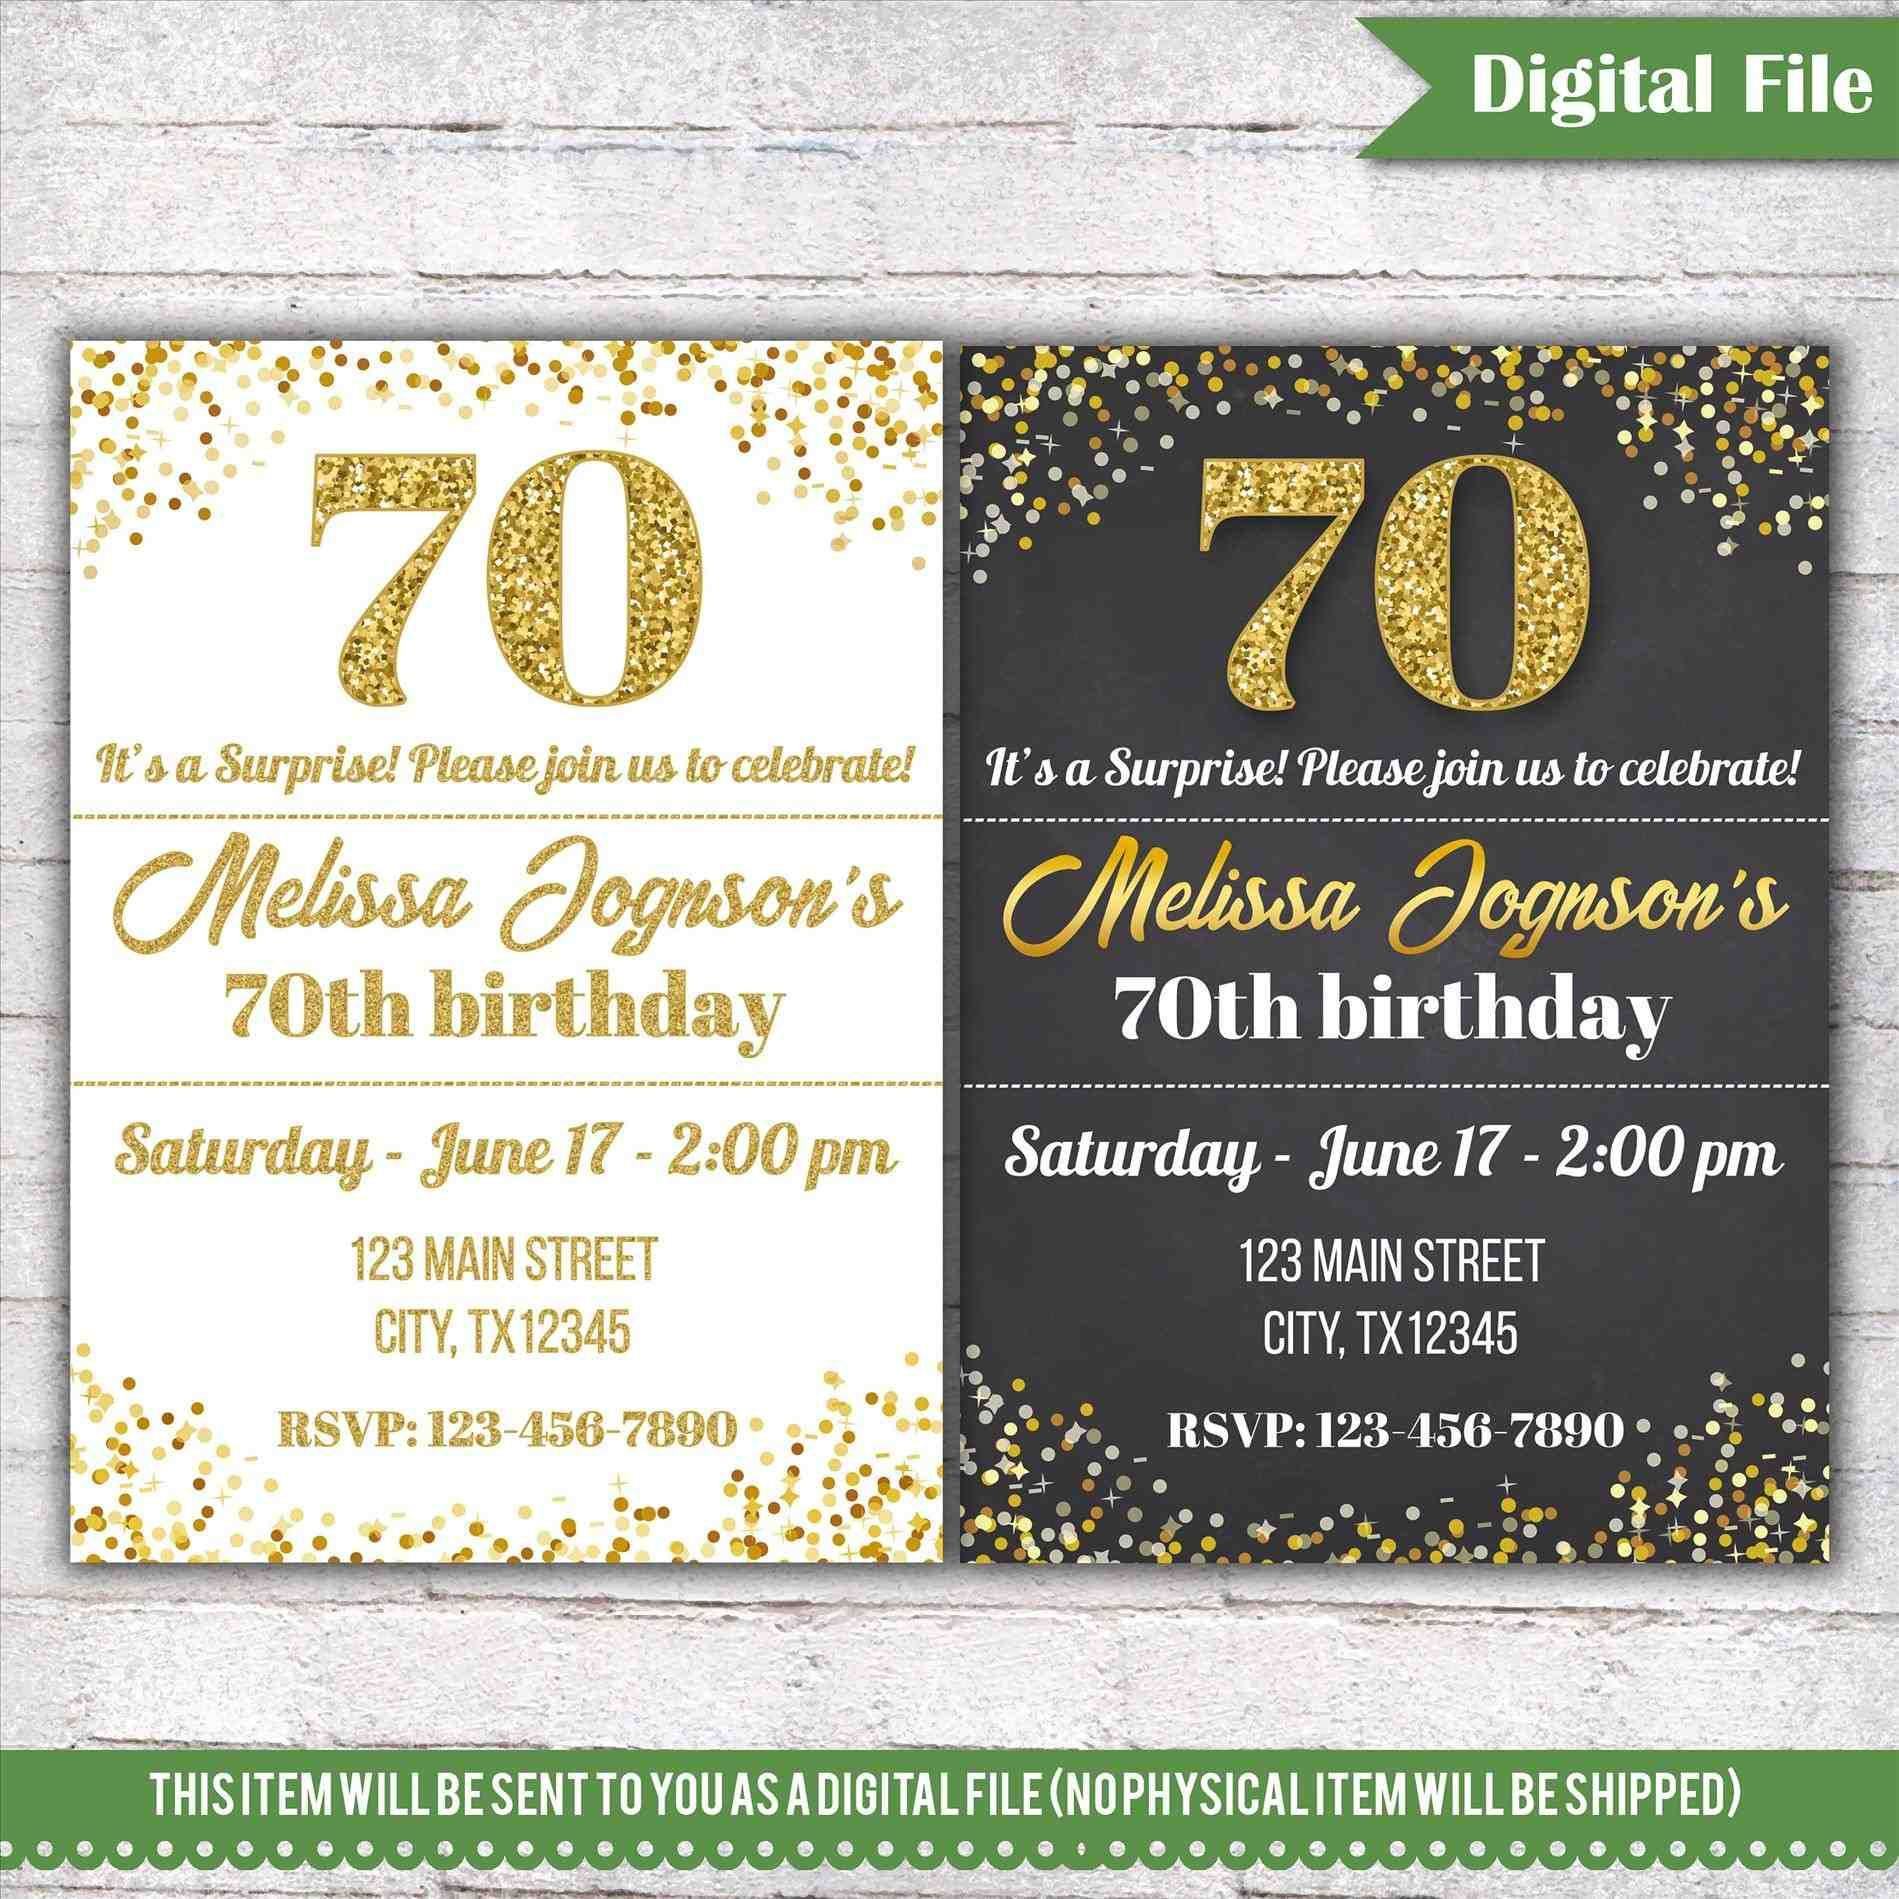 Full Size Of Template50th Birthday Invitations For Him Templates Together With 30th Party